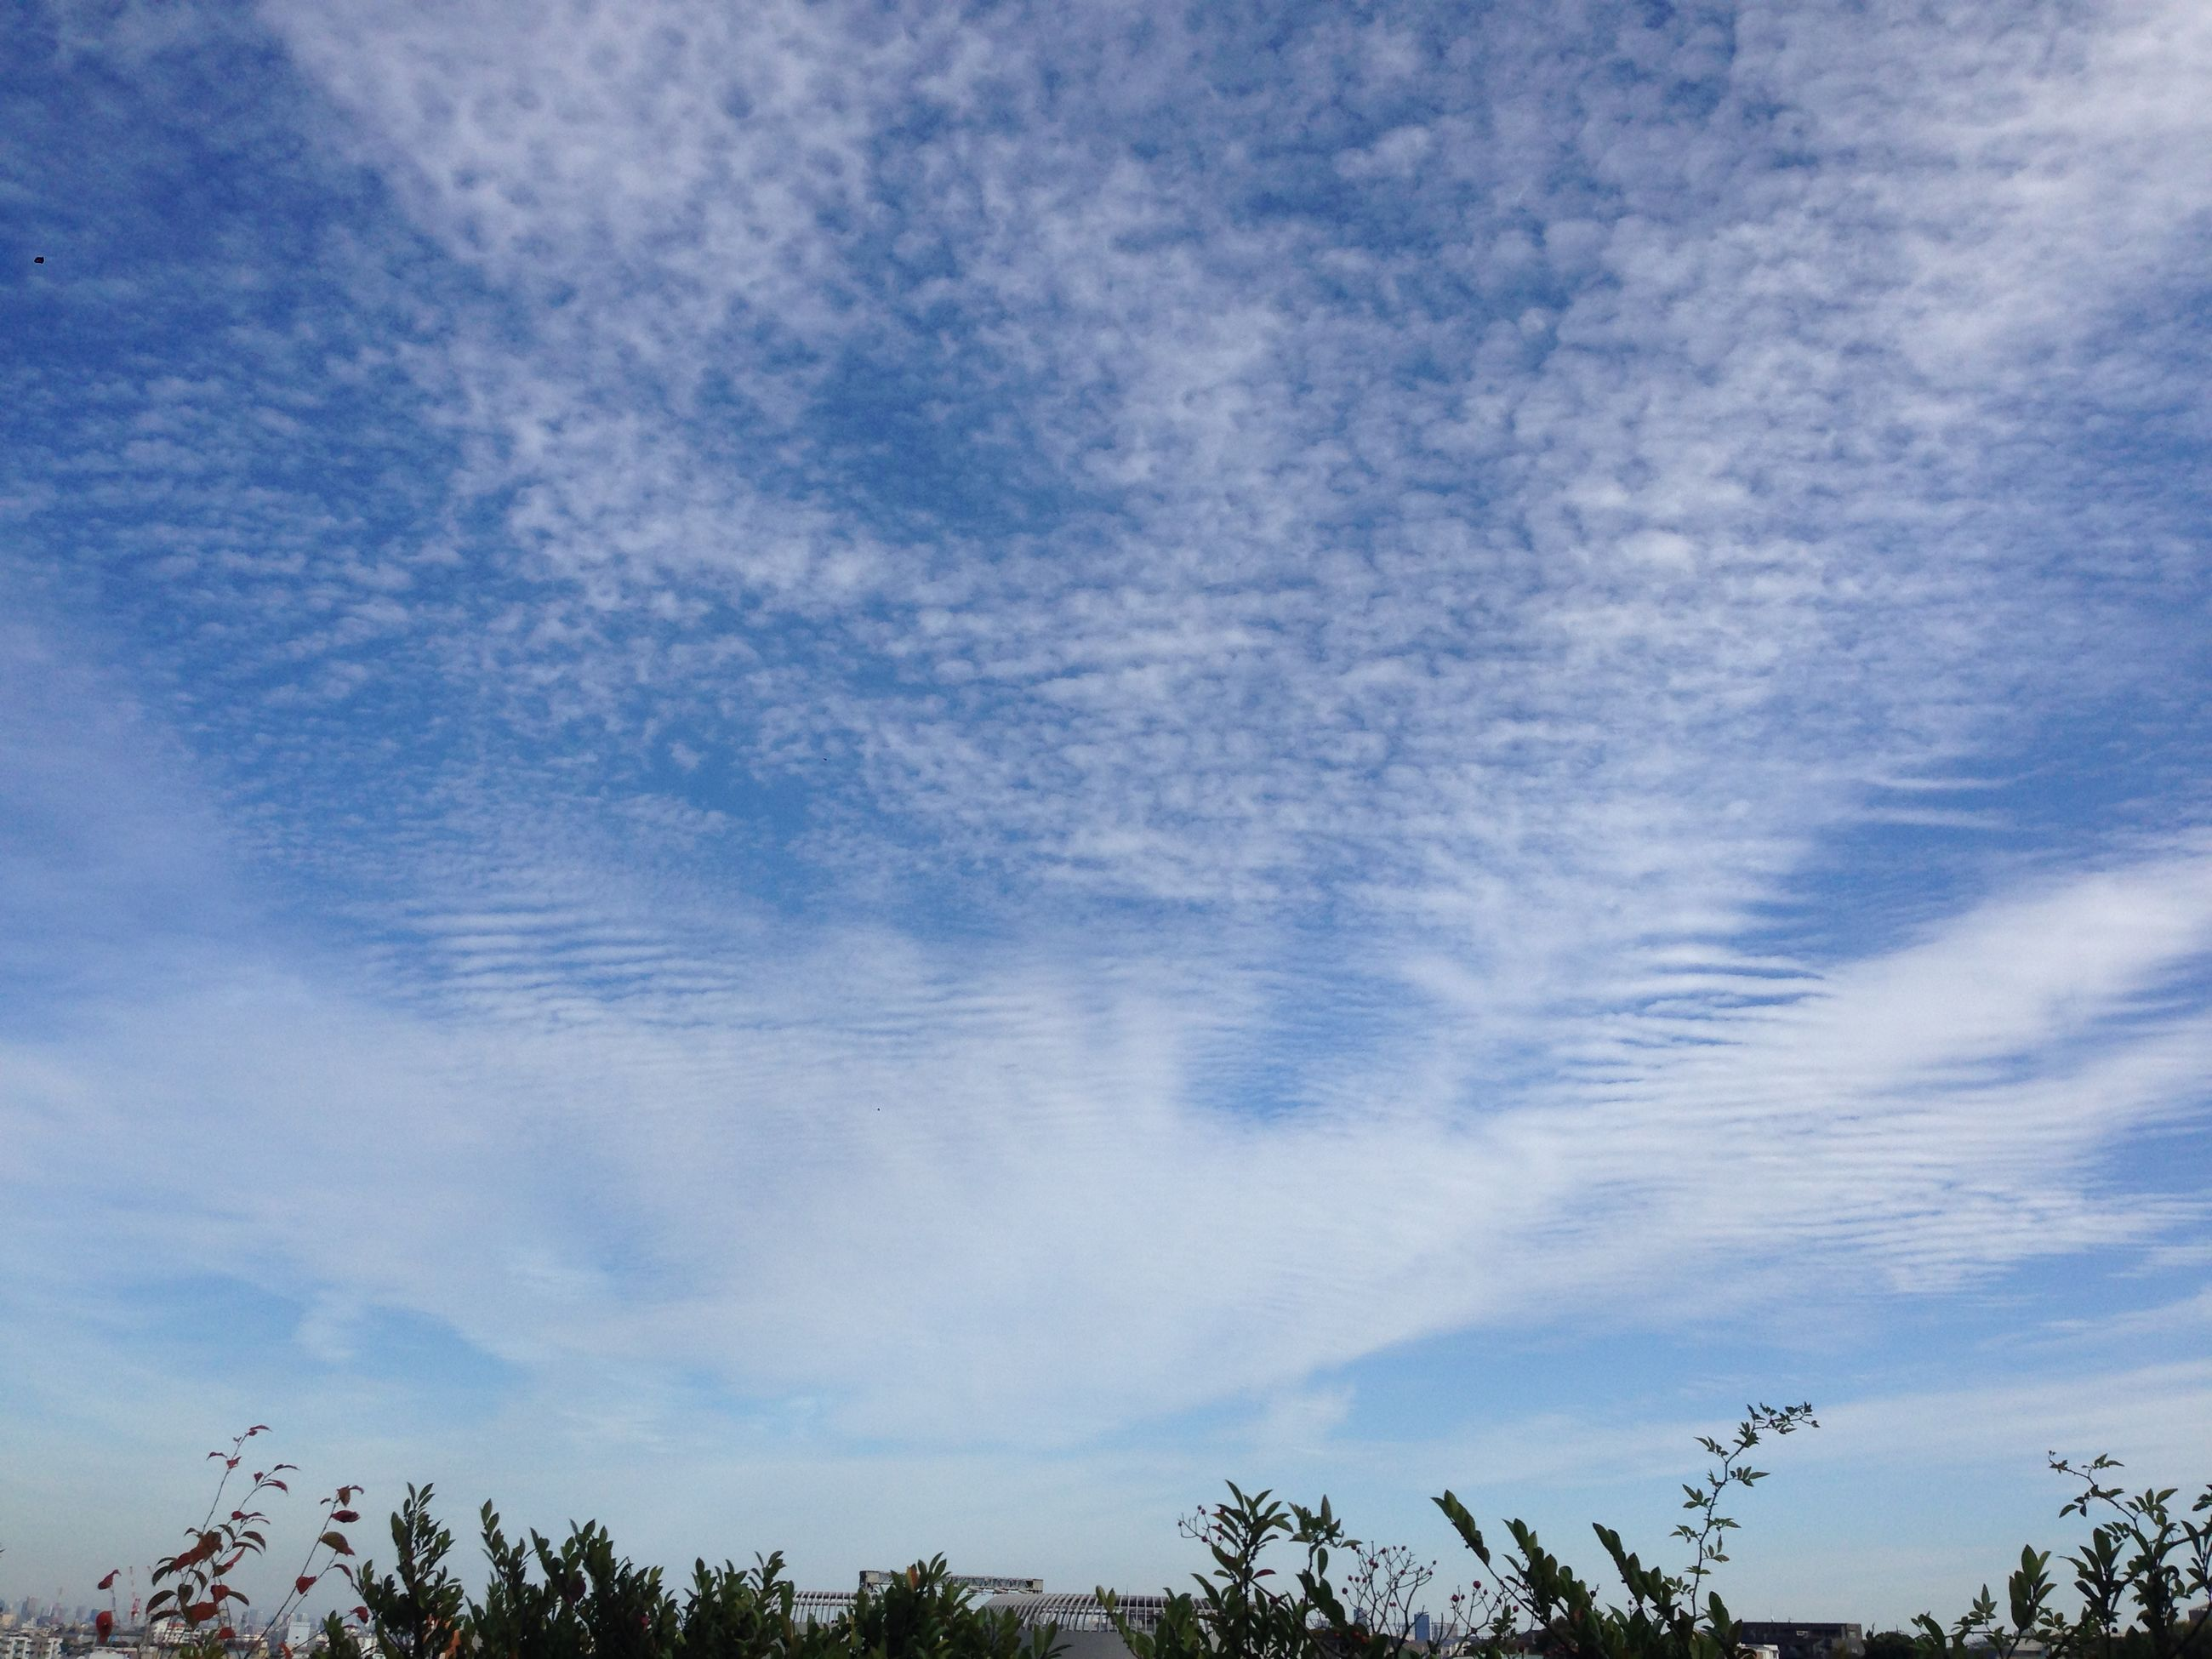 sky, tranquility, cloud - sky, beauty in nature, scenics, tranquil scene, weather, nature, cloudy, idyllic, low angle view, backgrounds, cloud, cloudscape, outdoors, season, winter, full frame, day, no people